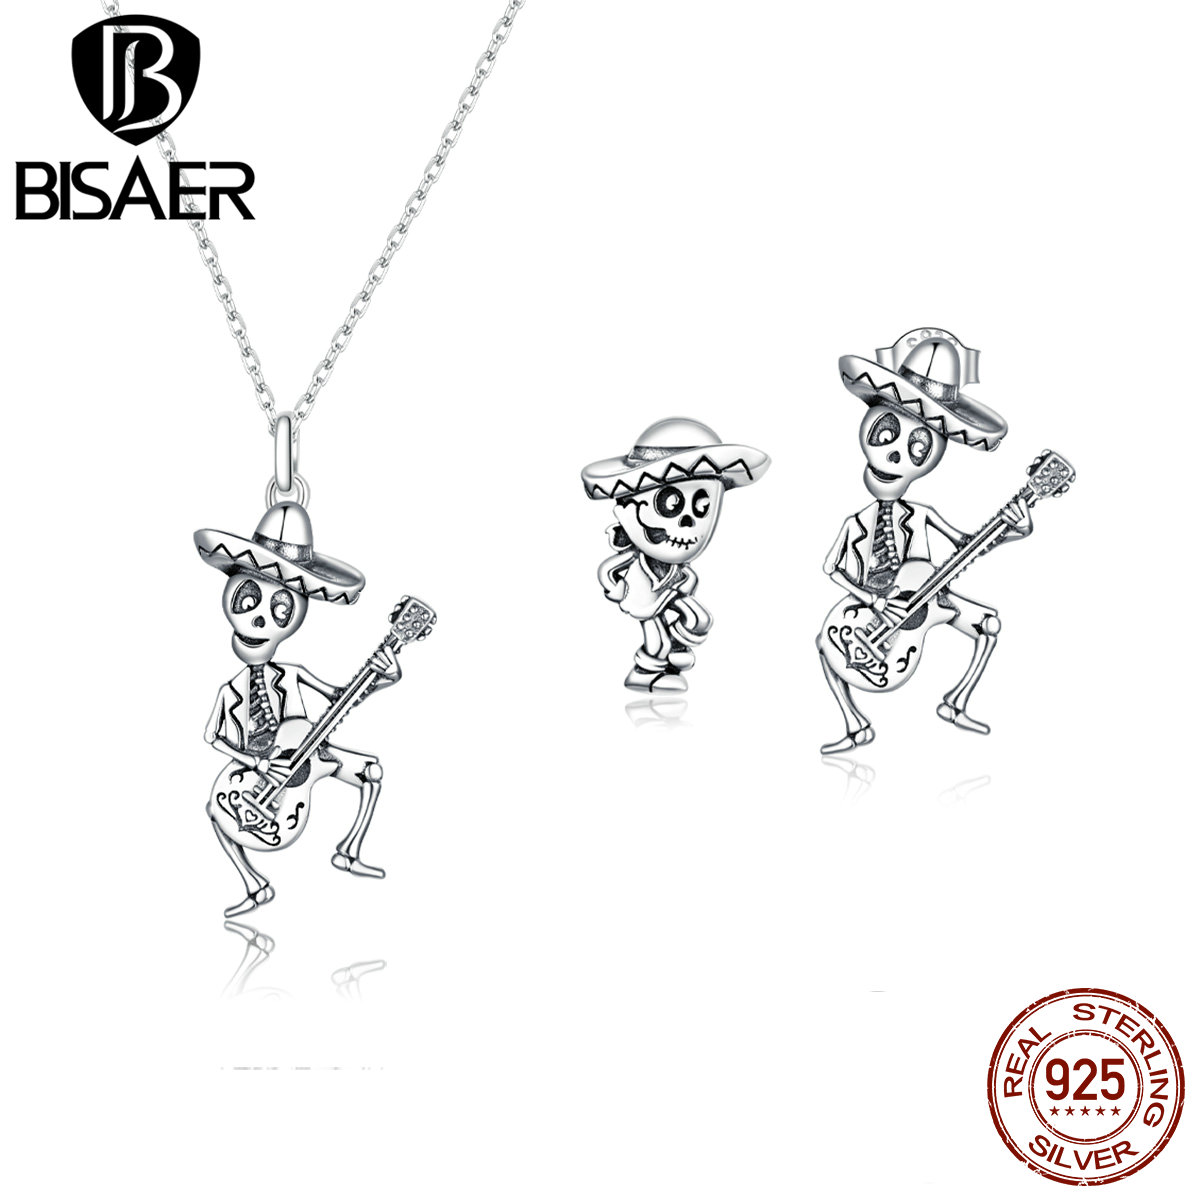 BISAER Genuine 925 Sterling Silver Jewelry Sets Skull Man with GuitarJewelry Set Luxury Authentic Silver Jewelry WES209